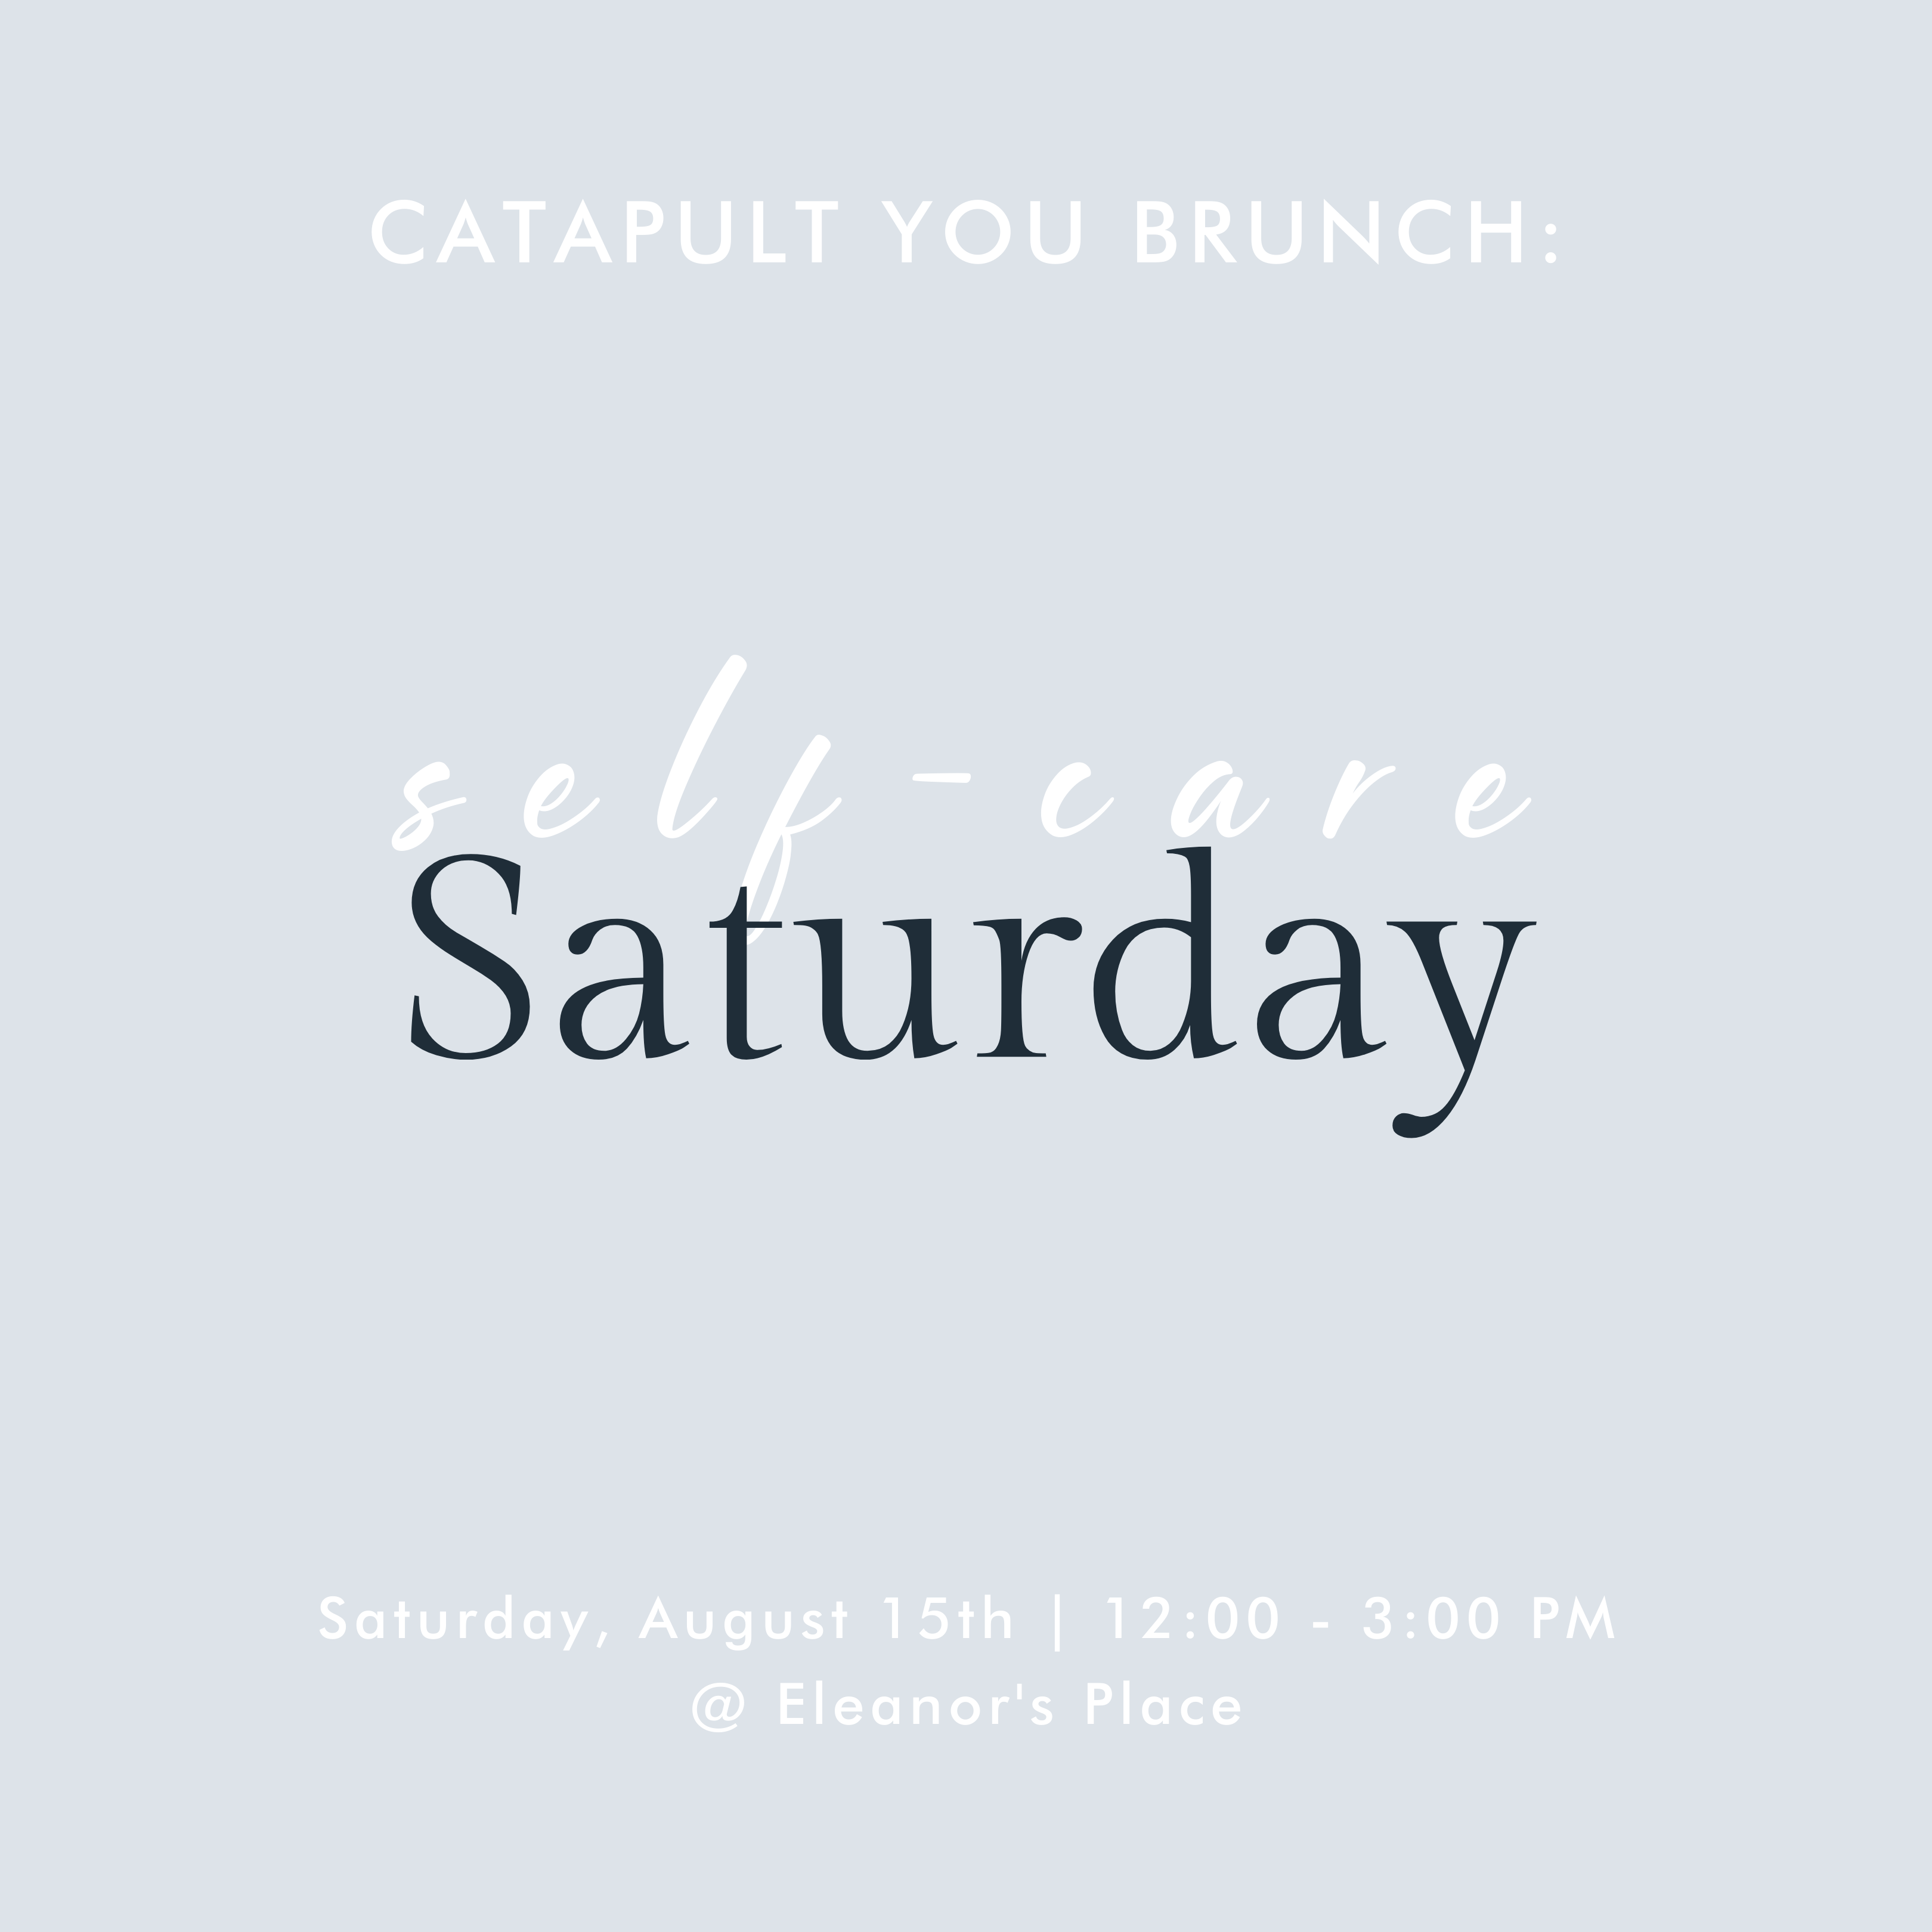 Catapult You Networking Brunch: Self-Care Saturday